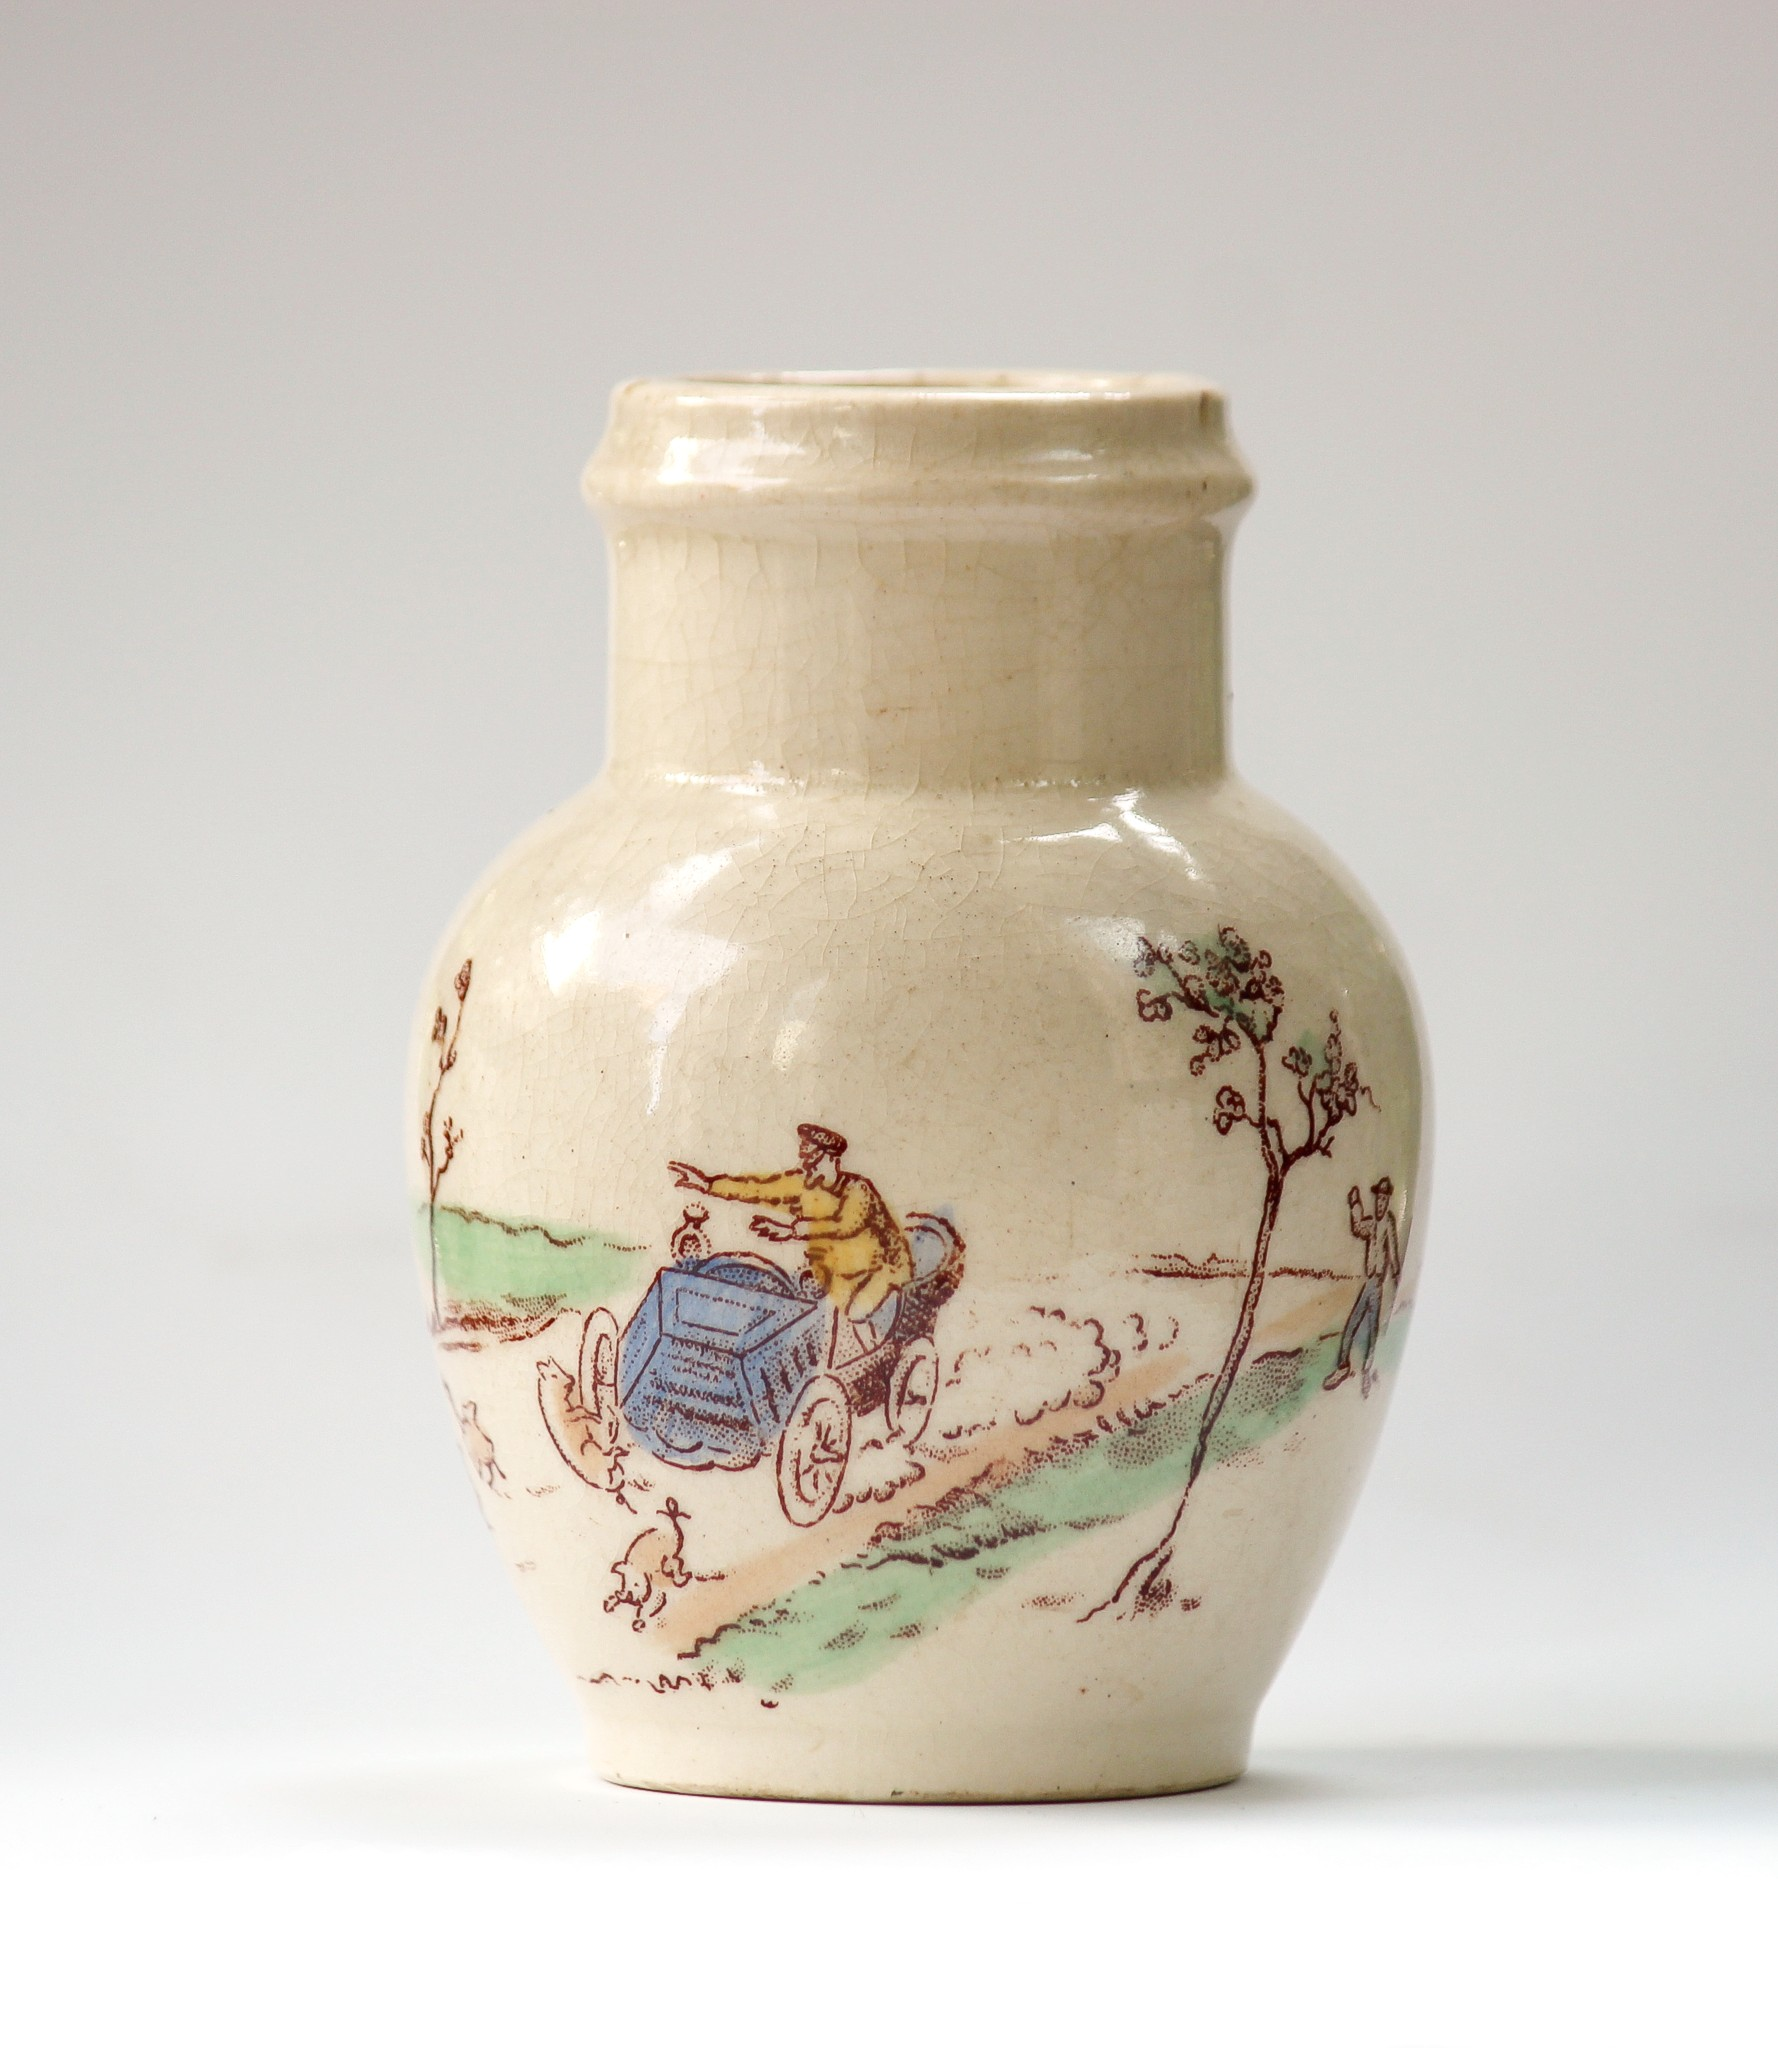 Mustard Pot with motoring scene by Gien